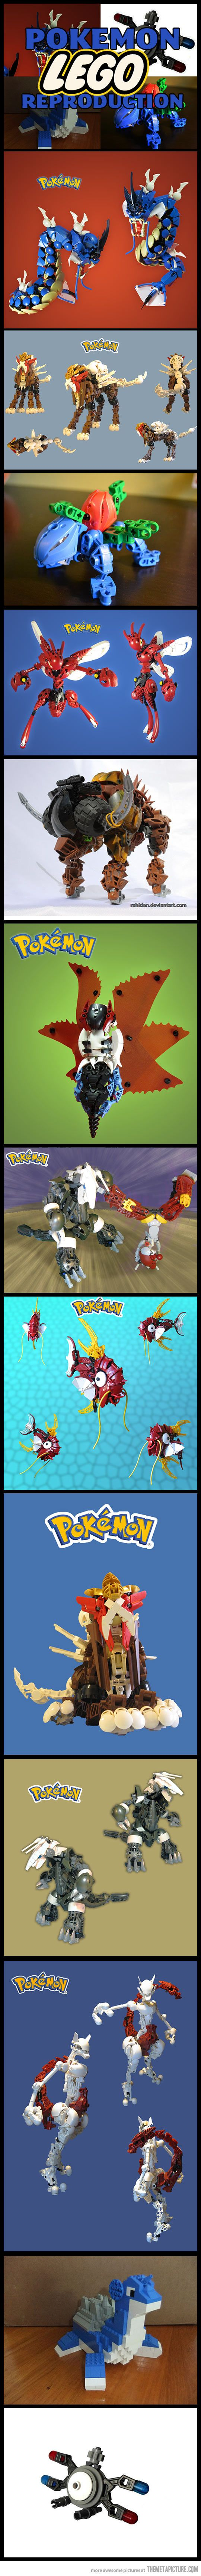 Cool Pokemon Lego reconstructions… @Jacqui Maher Eames you and Joey should make these